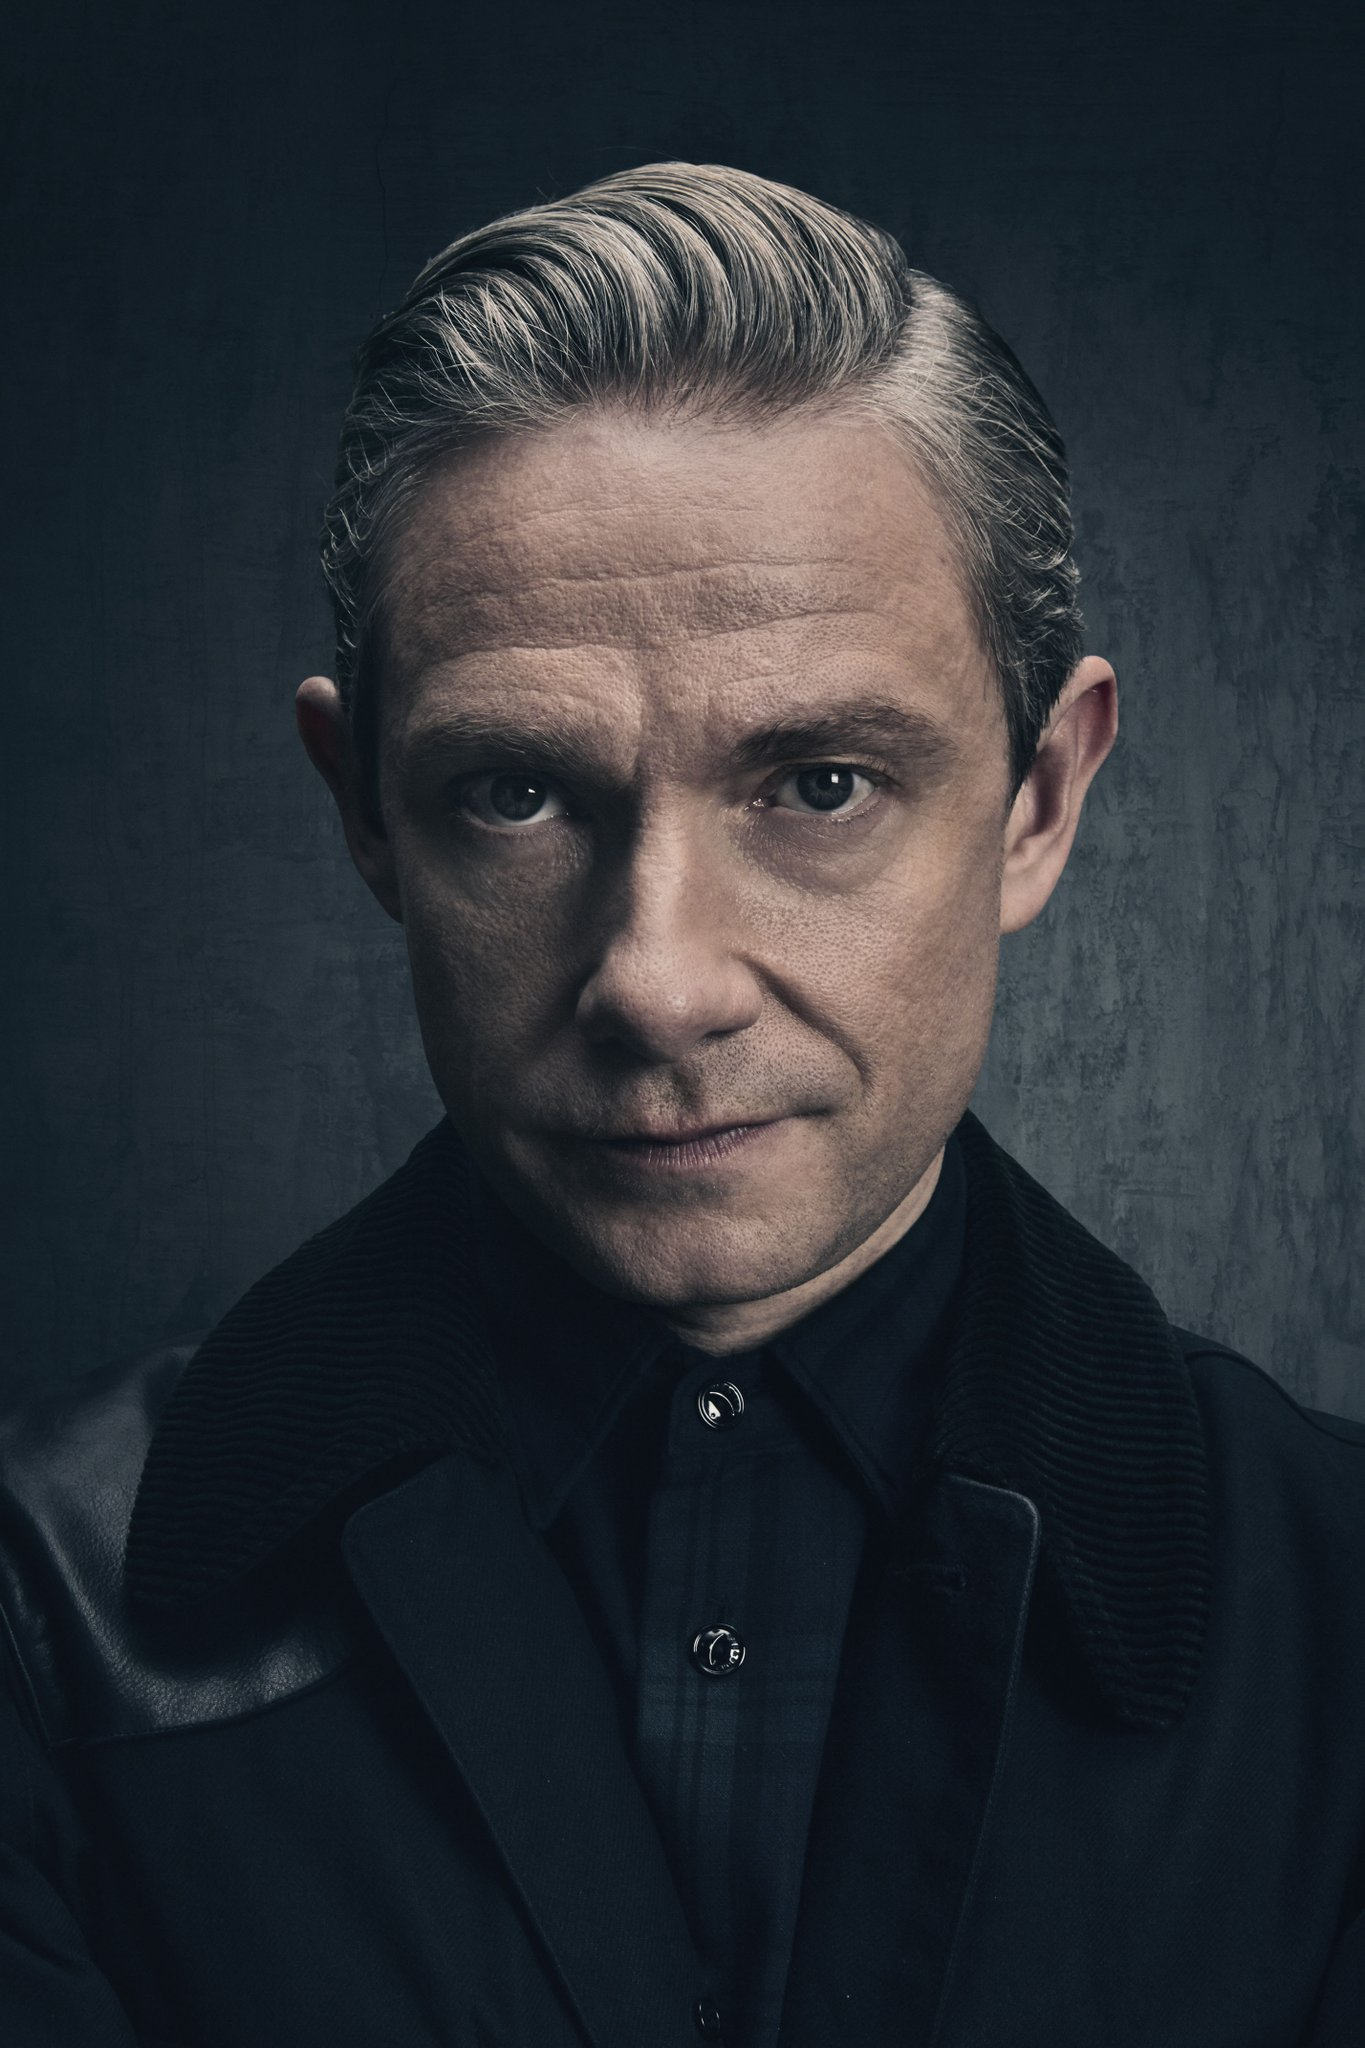 New #Sherlock S4 promo images to start the day! Martin Freeman as Doctor John Watson. https://t.co/mhh3BazxuQ